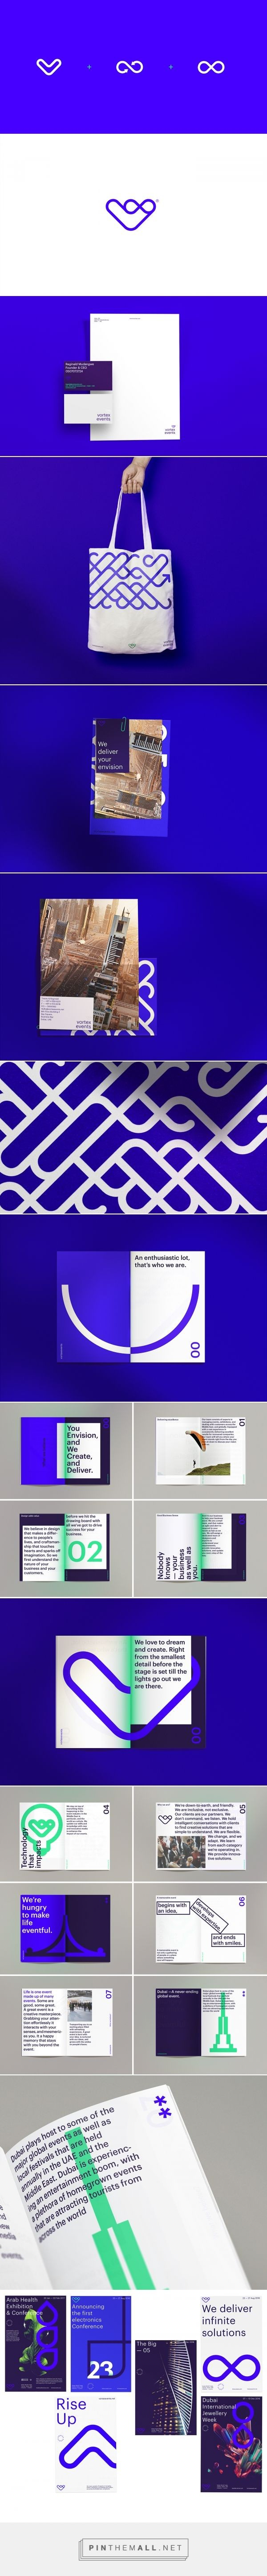 Vortex events on Behance a grouped images picture Pin Them All